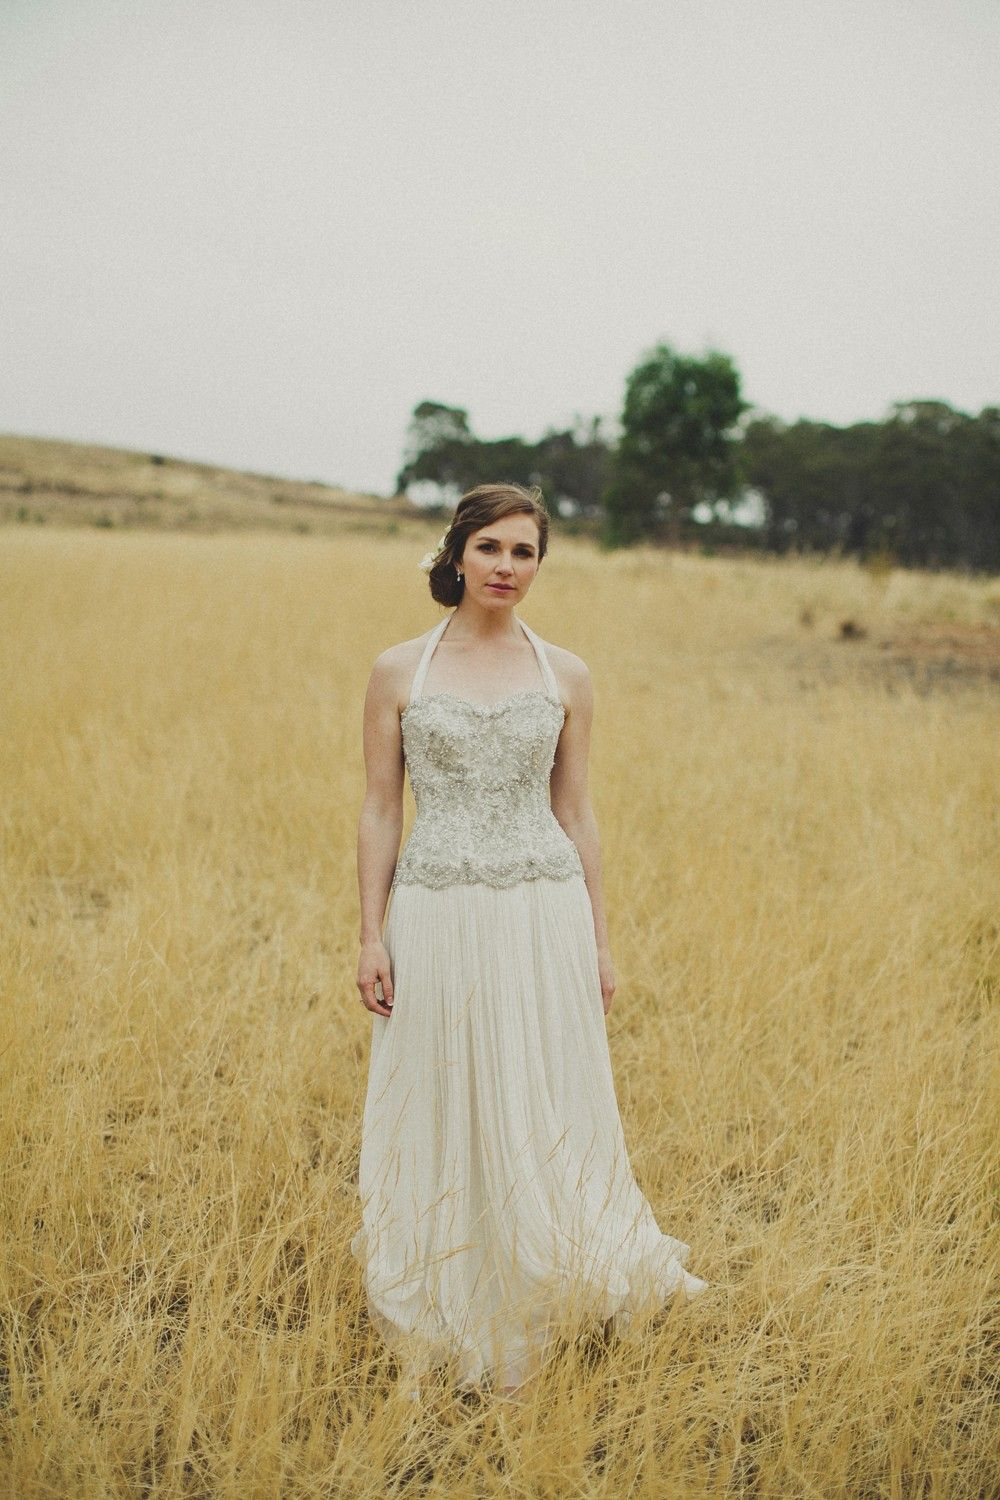 Previously owned wedding dresses  Bernadette Pimenta Couture Lyndall PreOwned Wedding Dress  Still